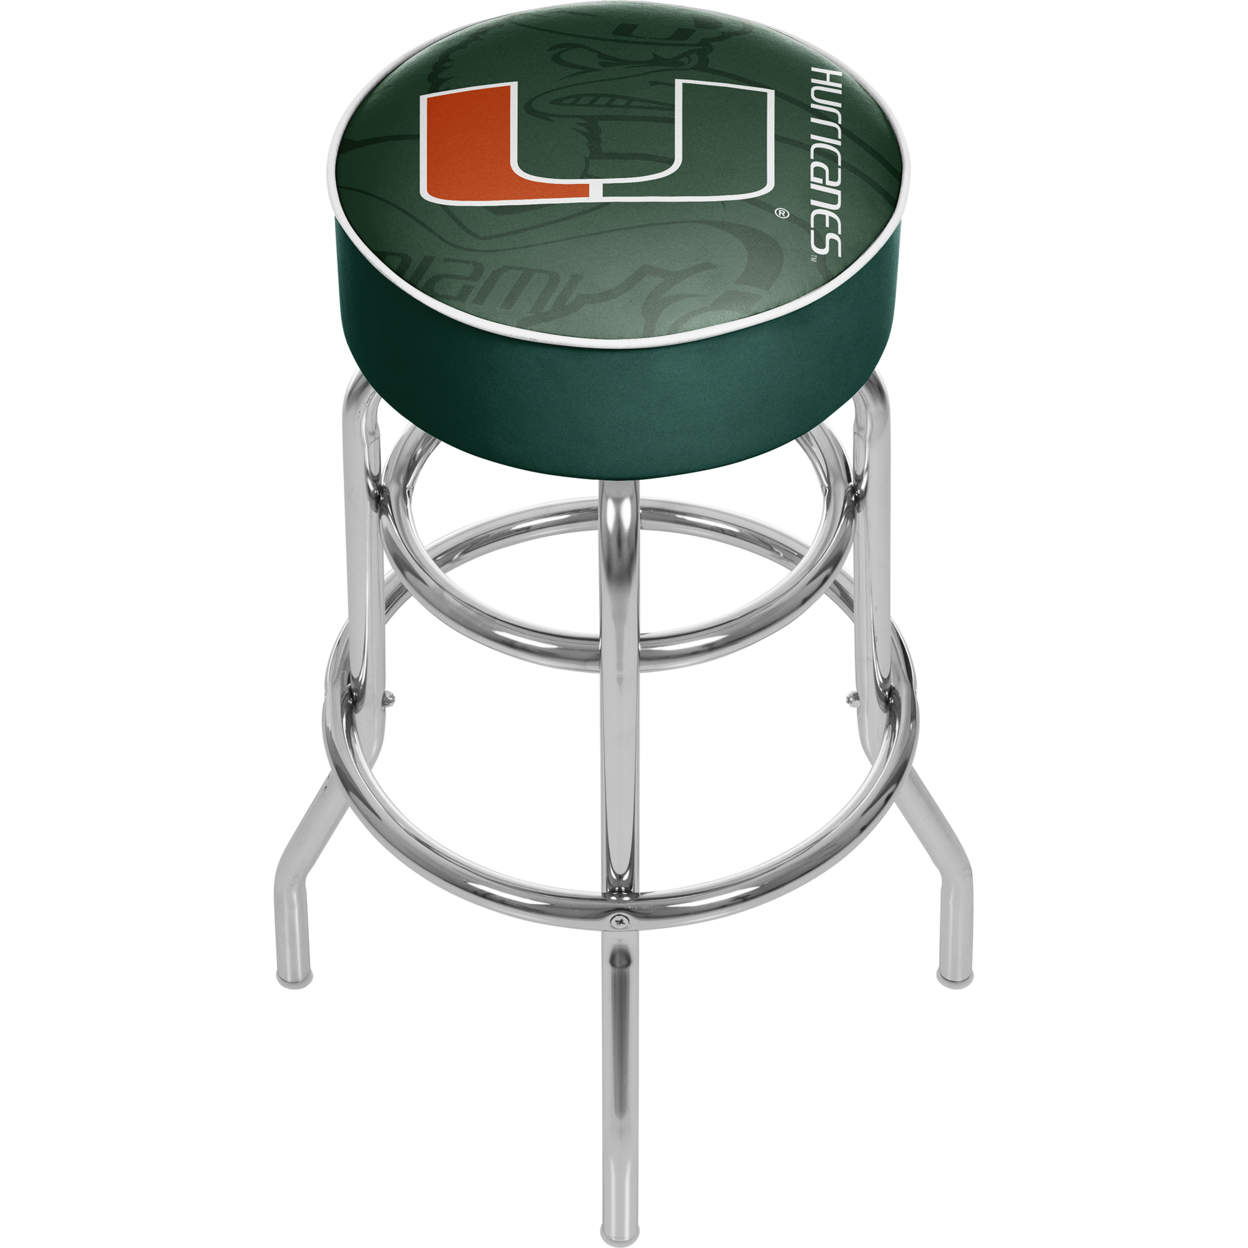 University of Miami Chrome Bar Stool with Swivel - Fade пиджак костюм selected 415208002124 415208002 124